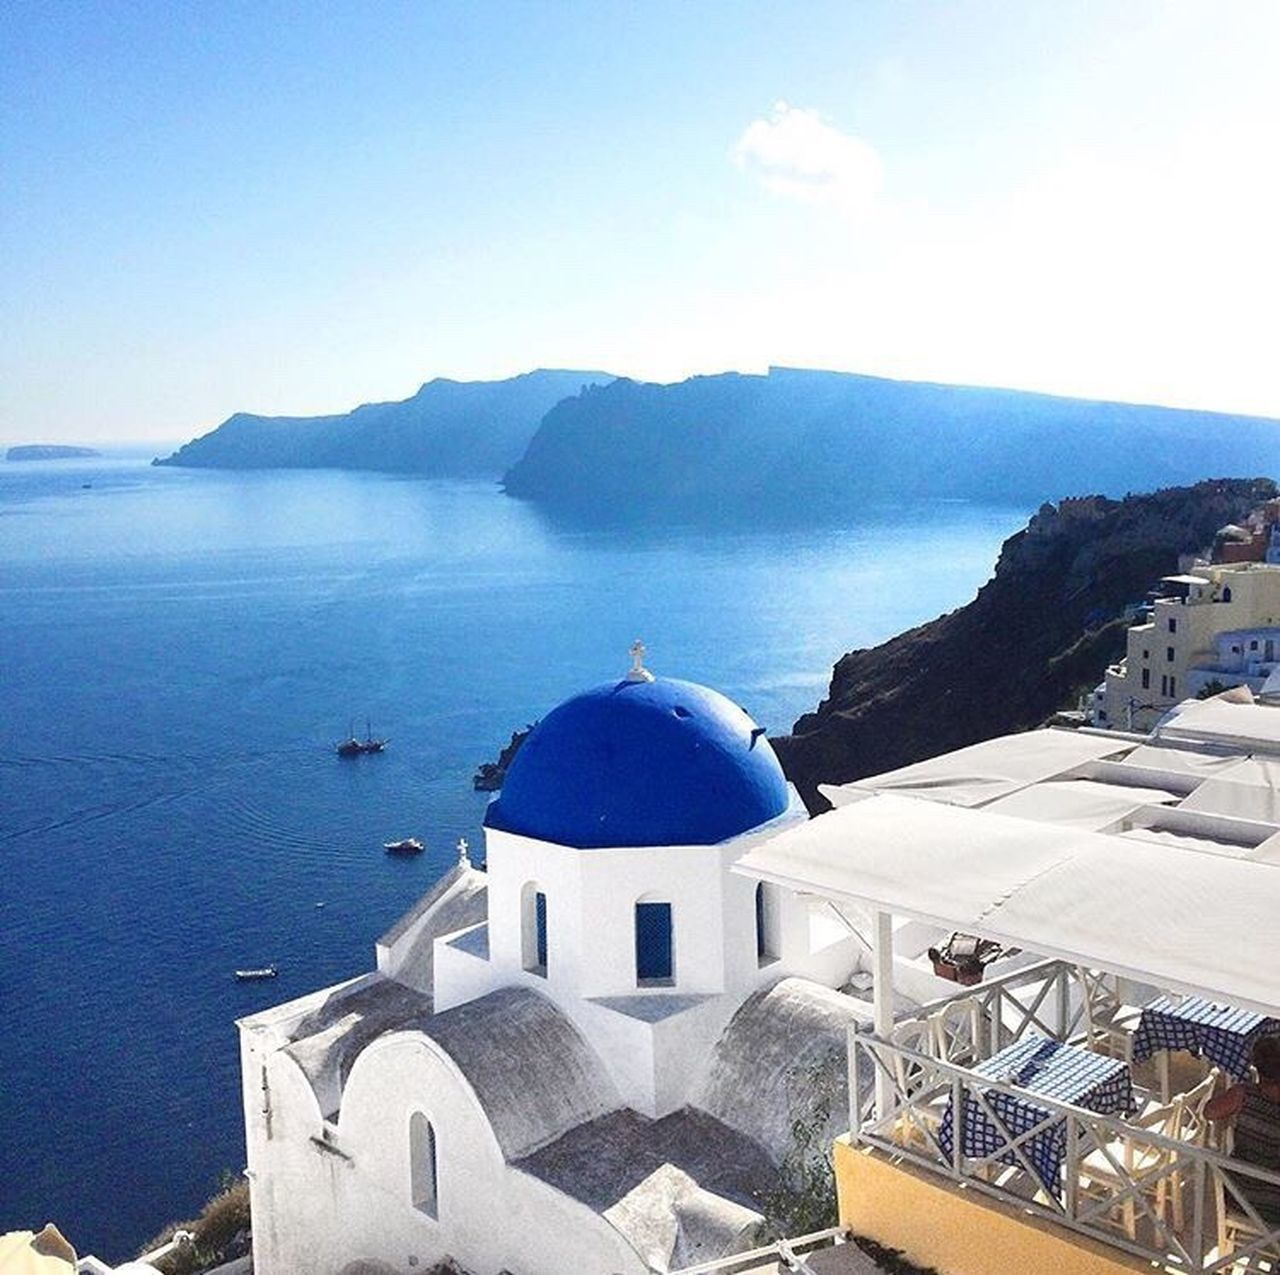 religion, architecture, sky, white color, built structure, whitewashed, spirituality, sea, water, day, blue, dome, place of worship, outdoors, building exterior, high angle view, nature, no people, roof, mountain, sunlight, beauty in nature, horizon over water, cross, travel destinations, scenics